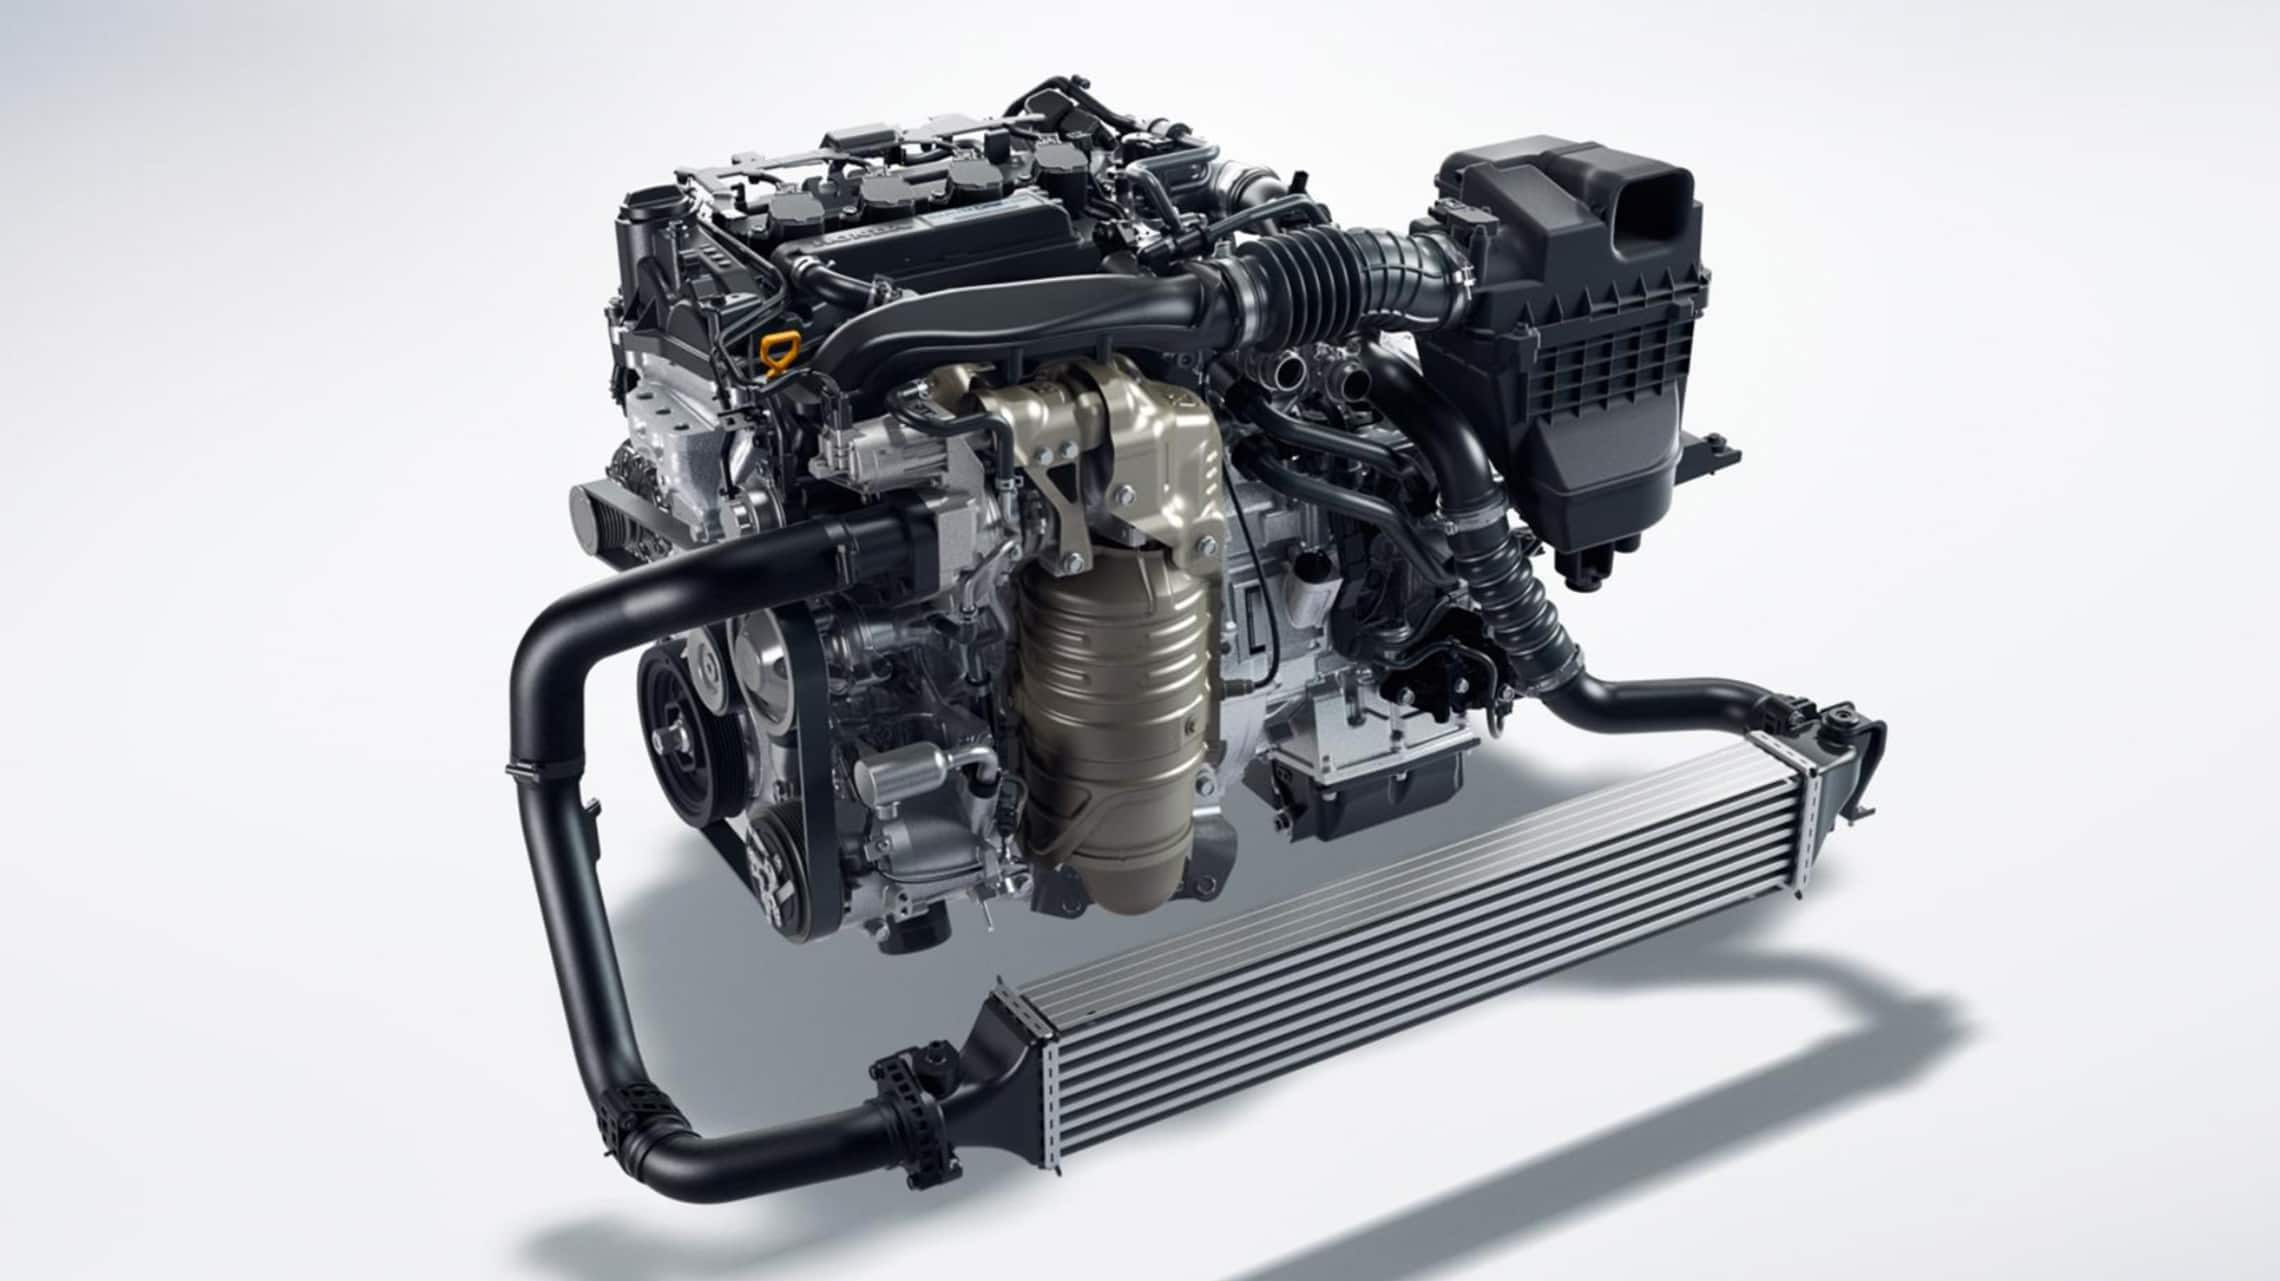 1.5-liter turbocharged engine detail in the 2020 Honda Civic Hatchback.